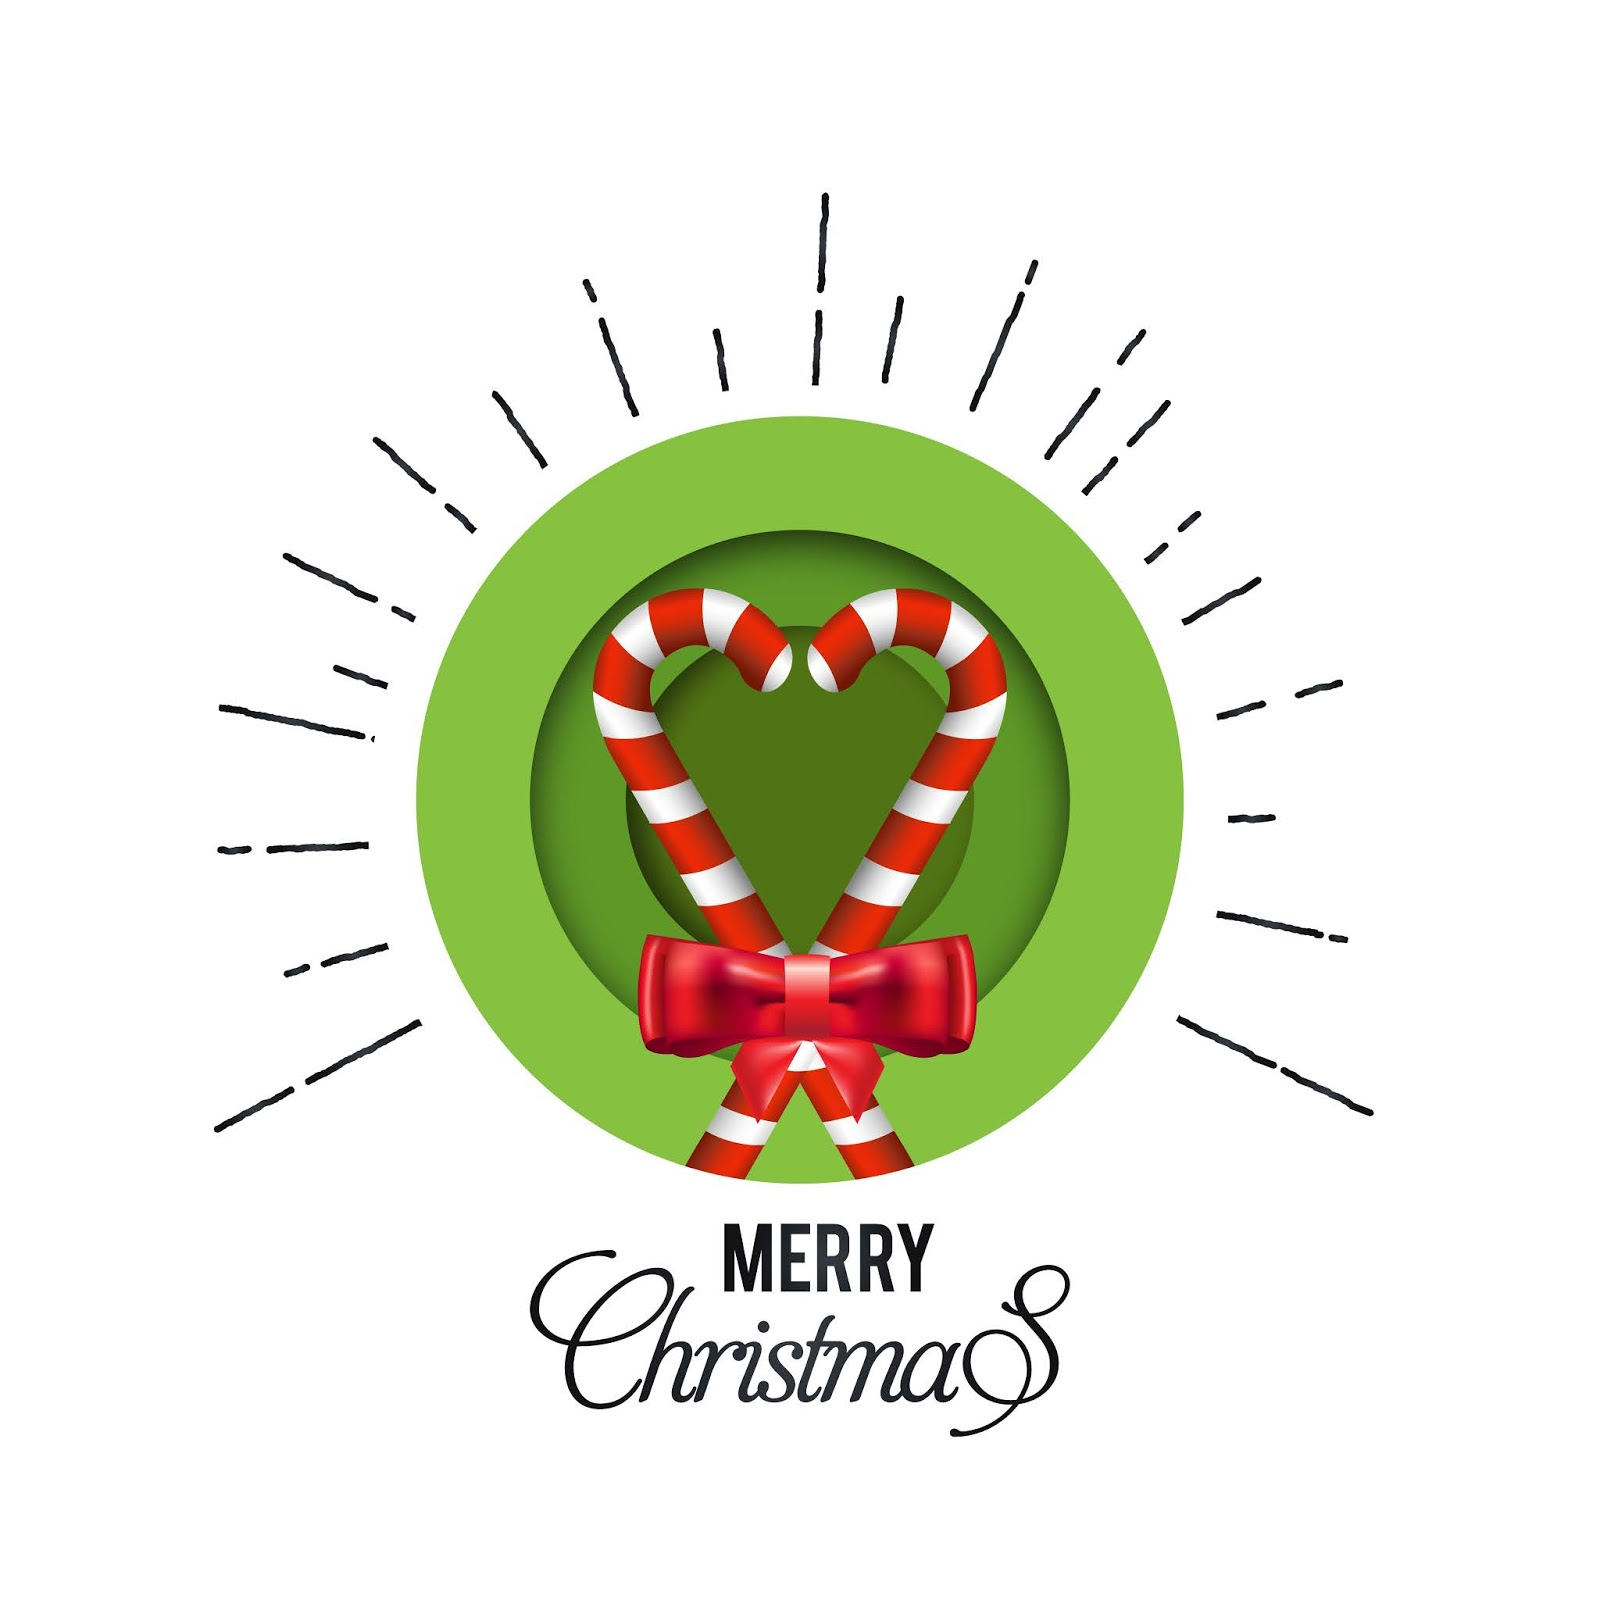 Merry Christmas Banner Frame With Flakes Green Ground Free Download Vector CDR, AI, EPS and PNG Formats